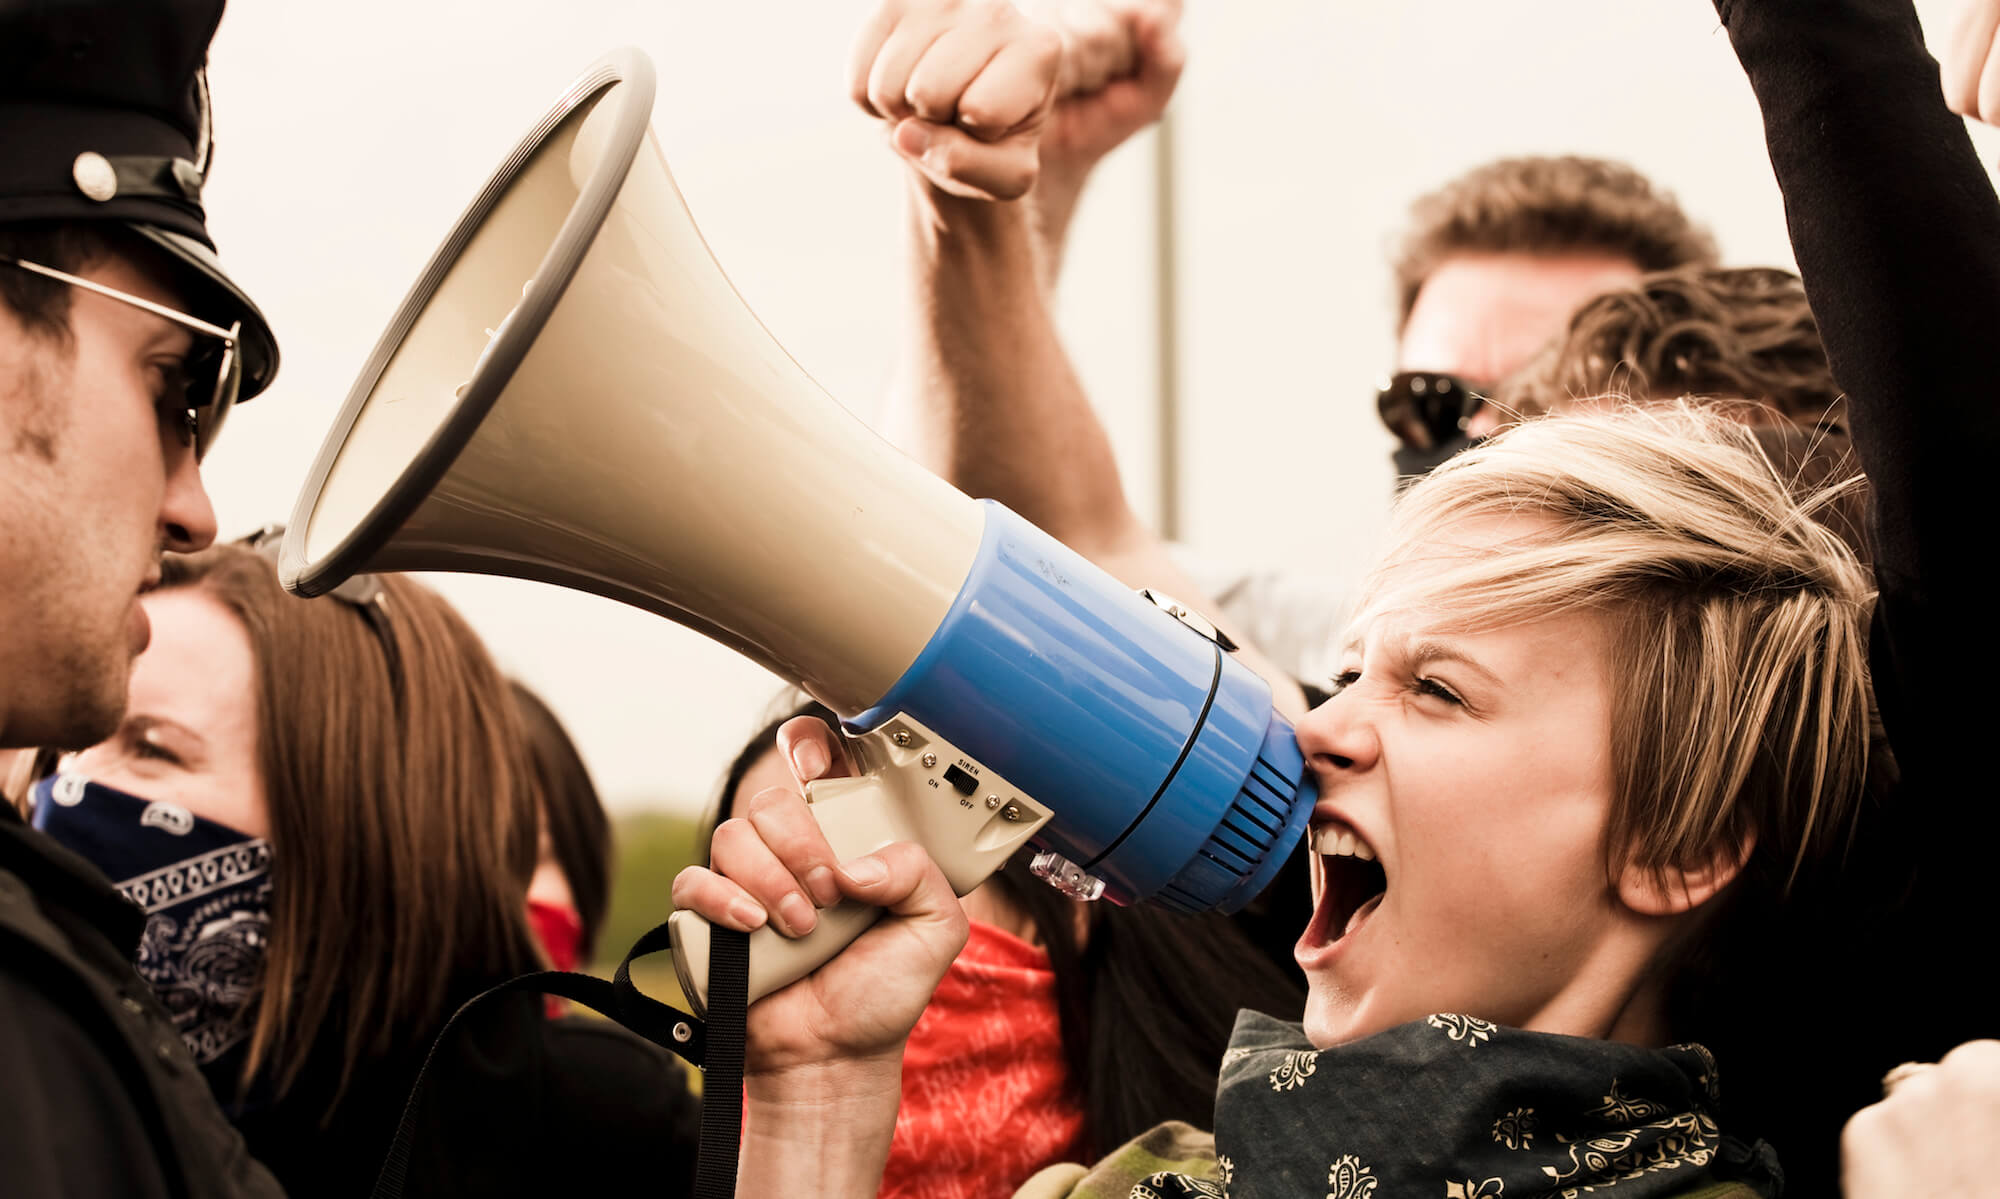 Woman yelling into megaphone at protest